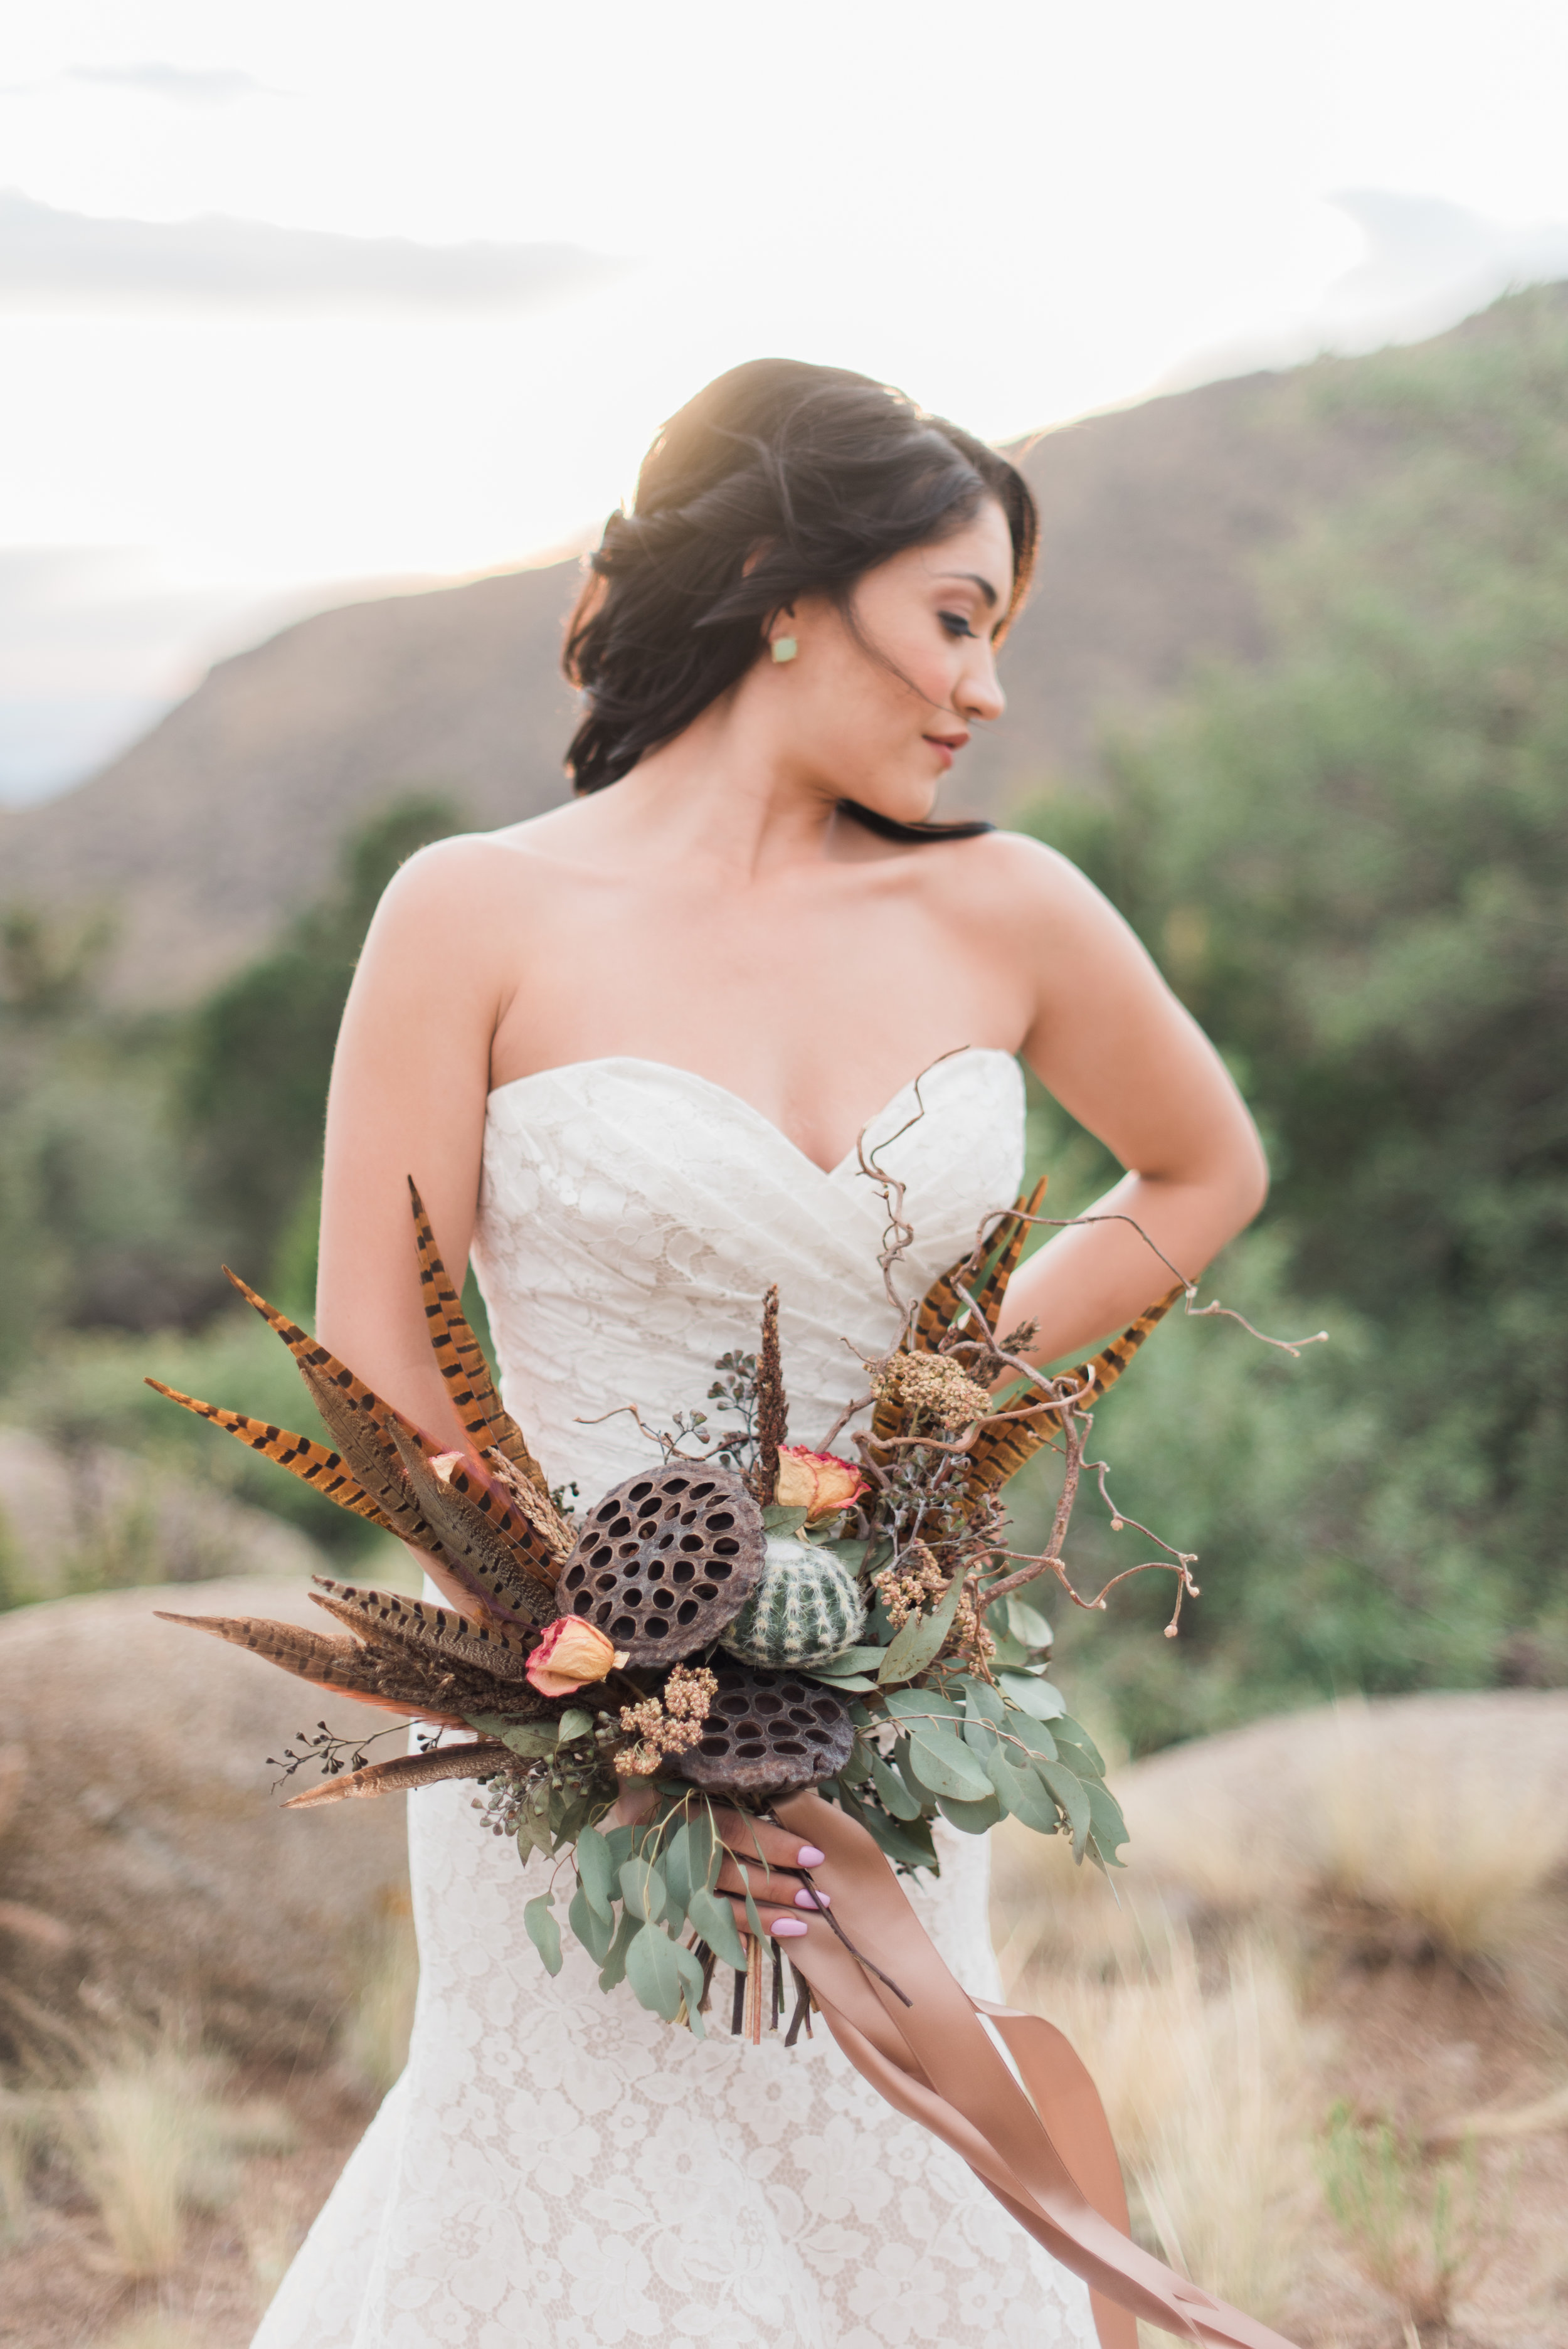 Editorial: Published in Albuquerque Perfect Wedding Guide. Briana Nicole Photography. Gown: Bridal Elegance by Darlene. Sandia Foothills, New Mexico.